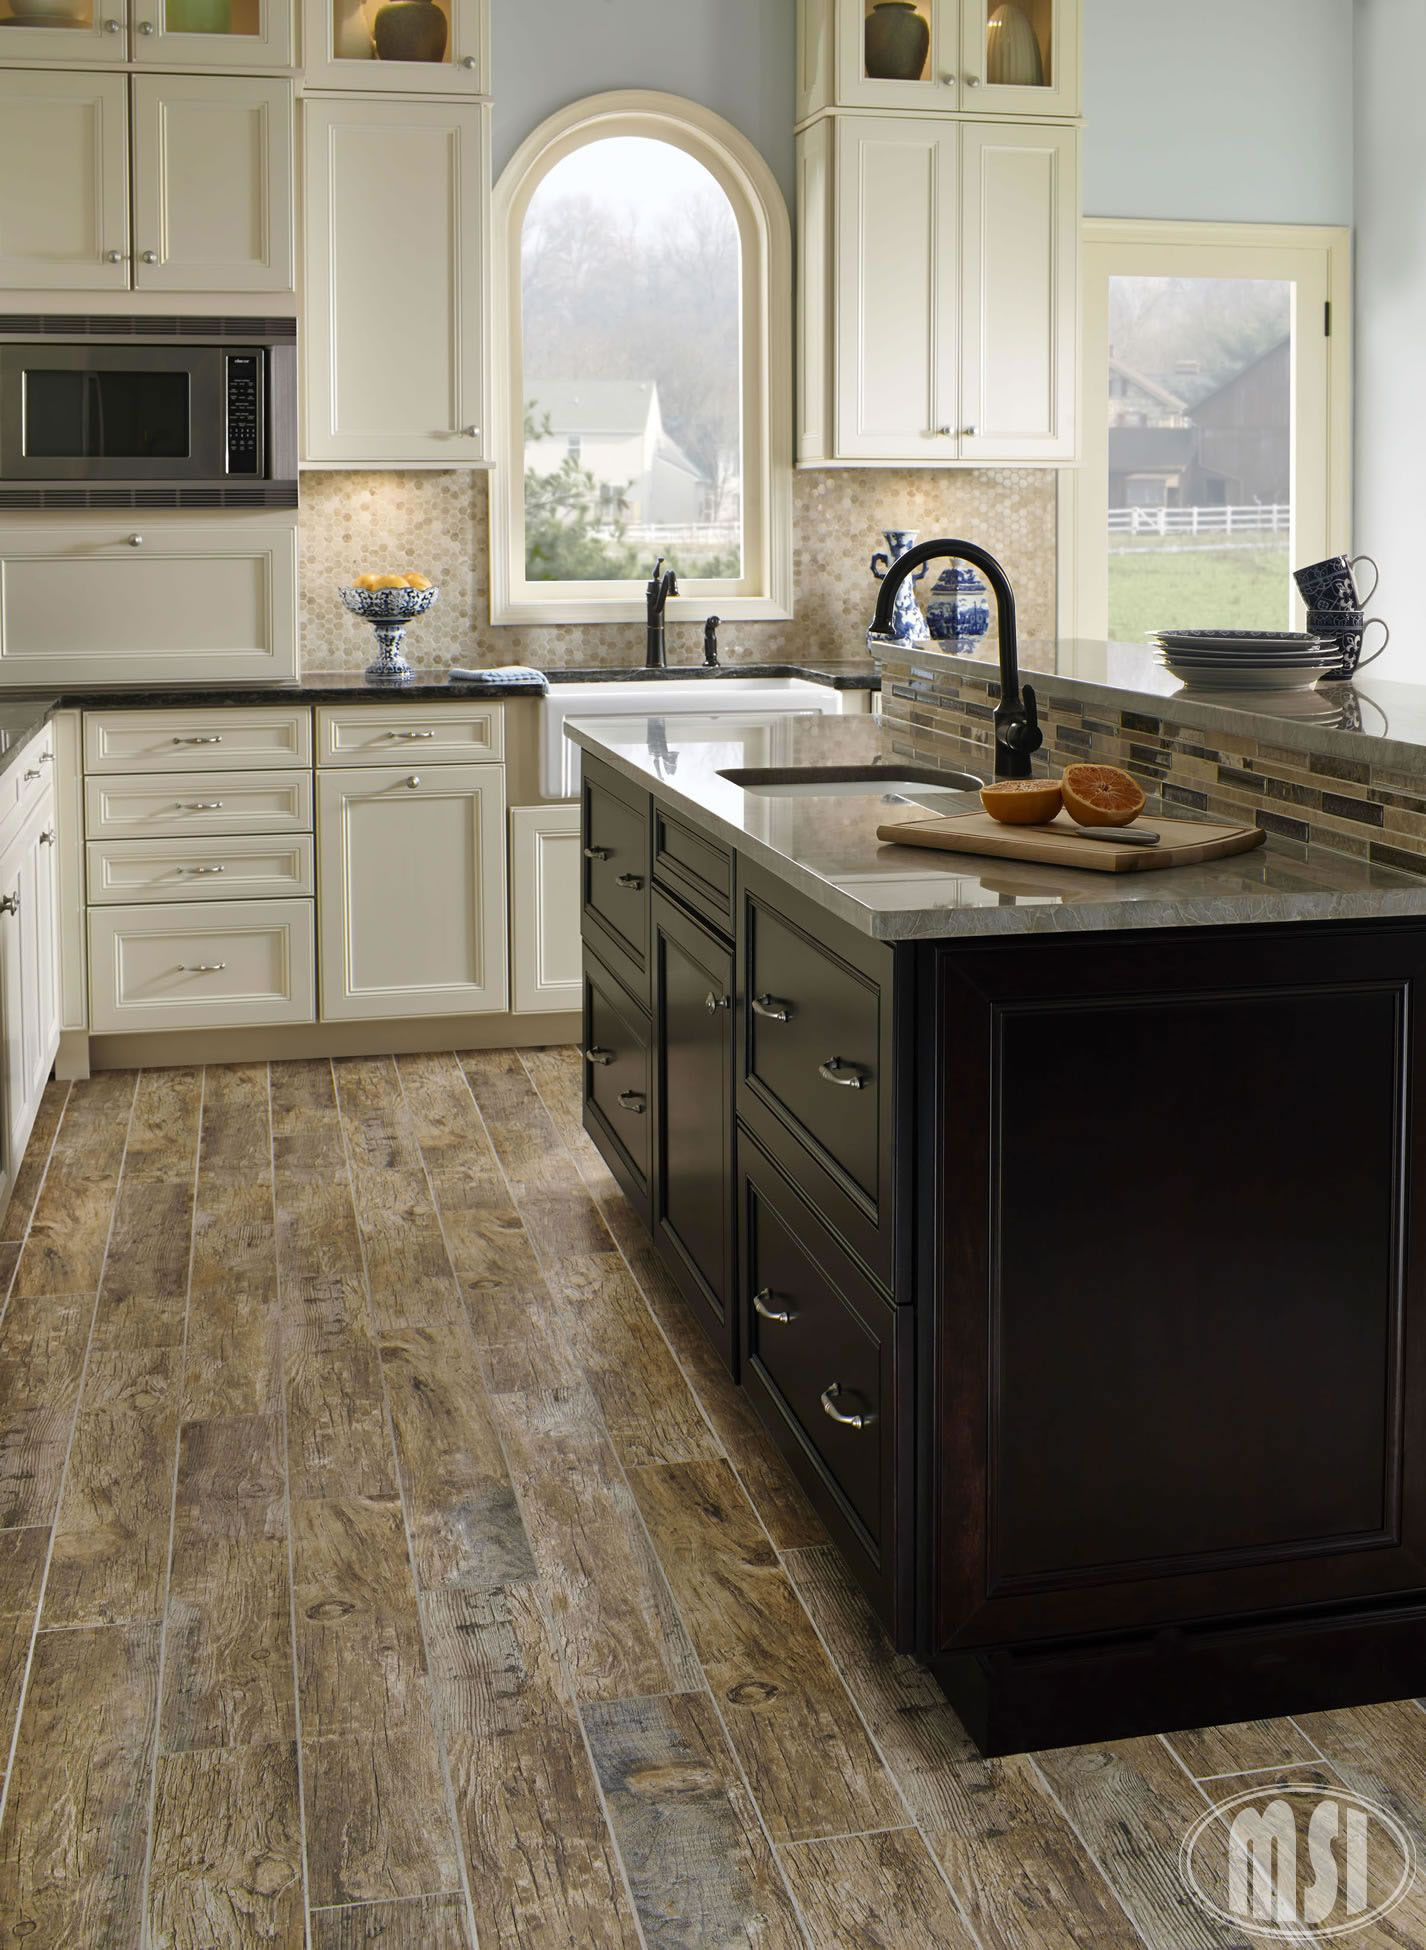 Tile Floors For Kitchen Perfect Kitchen Floor No Need To Worry About Real Wood Floors